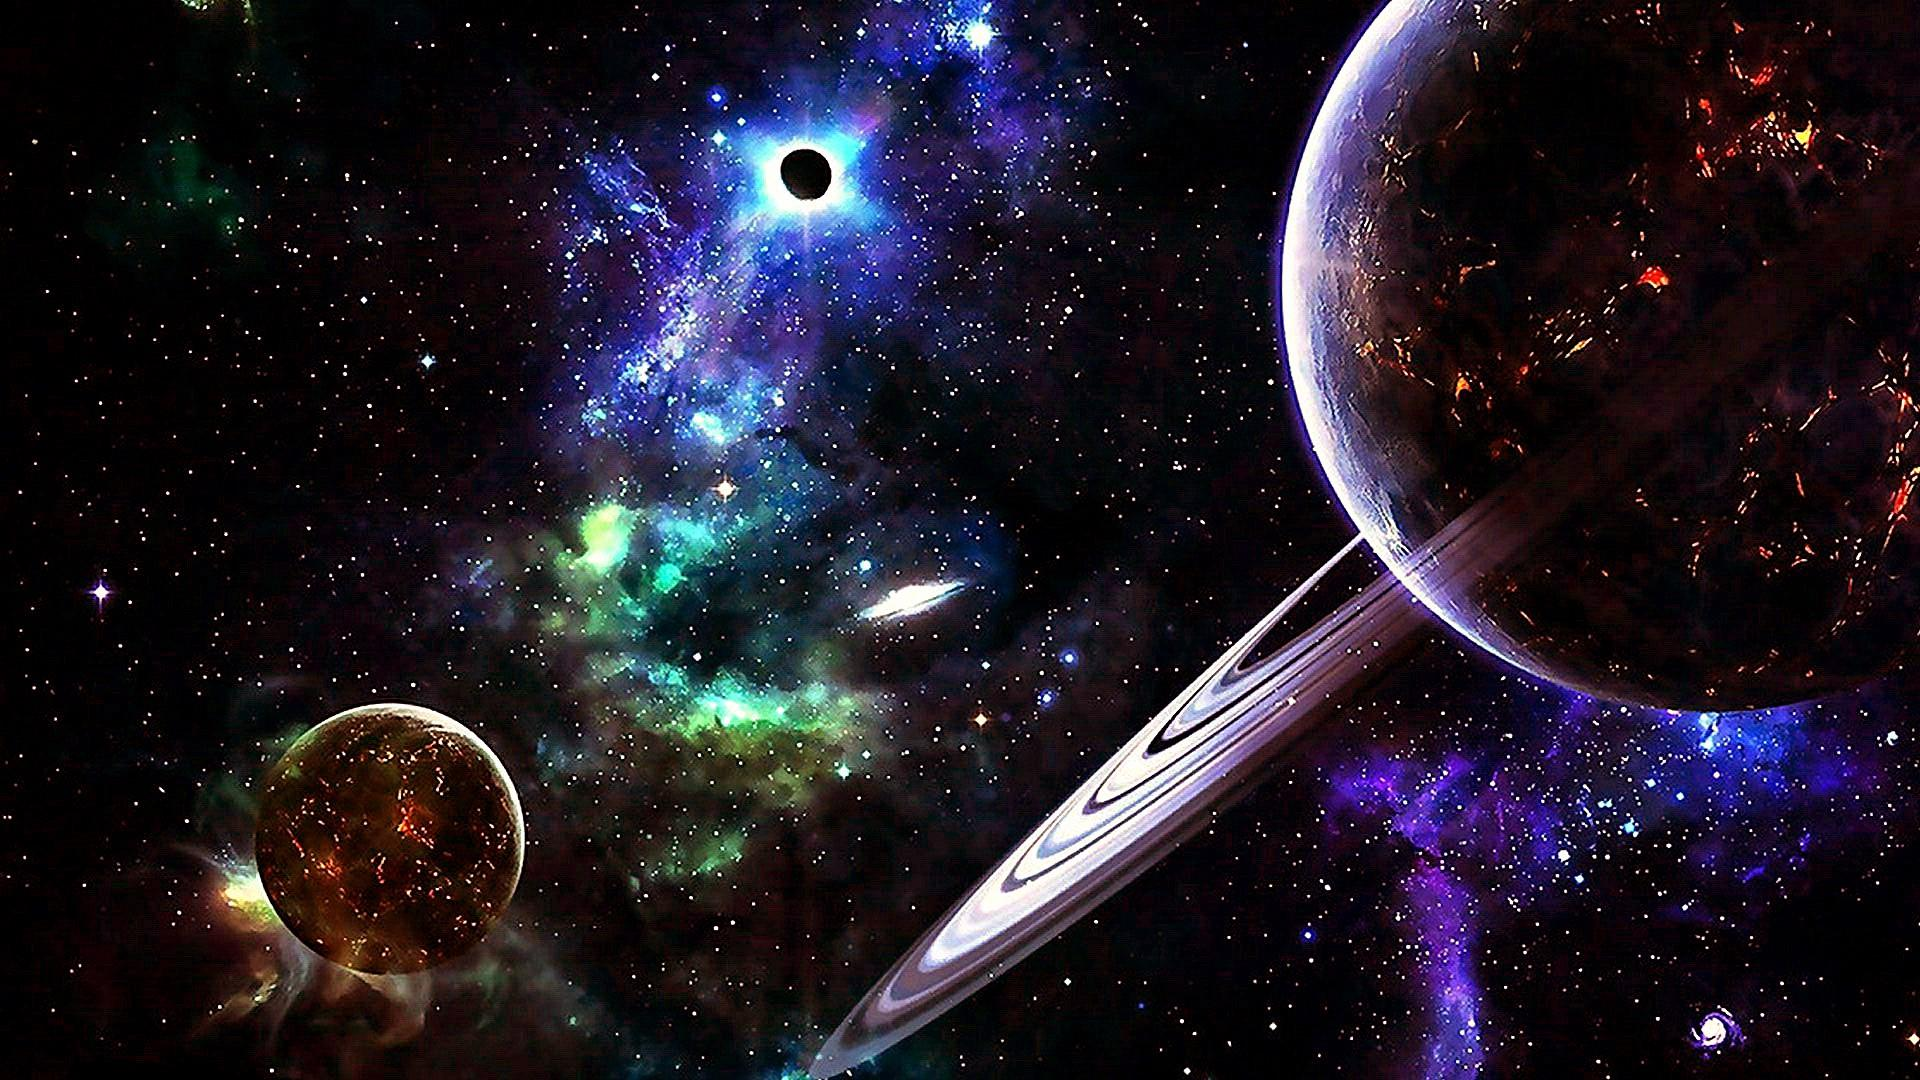 1920x1080 Planets In The Universe Wallpaper   Wallpaper Studio 10   Tens of ...